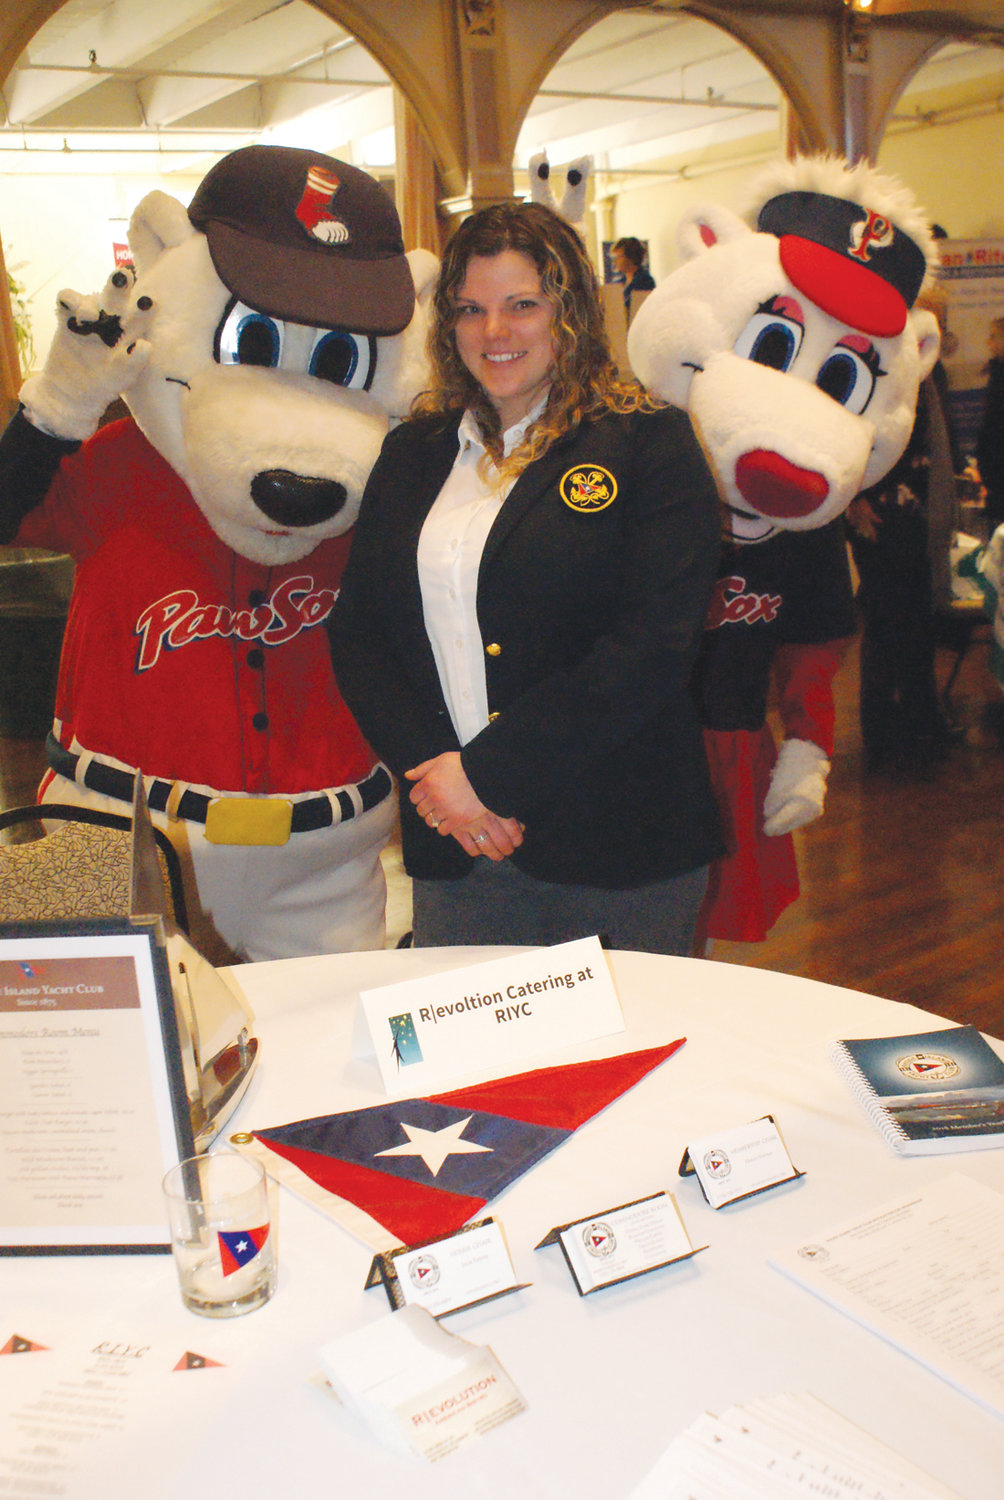 WITH PAWS: Having fun with Paws and Mrs. Paws from the Pawtucket Red Sox was Holly Natale, membership chairperson for the Rhode Island Yacht Club in Cranston.